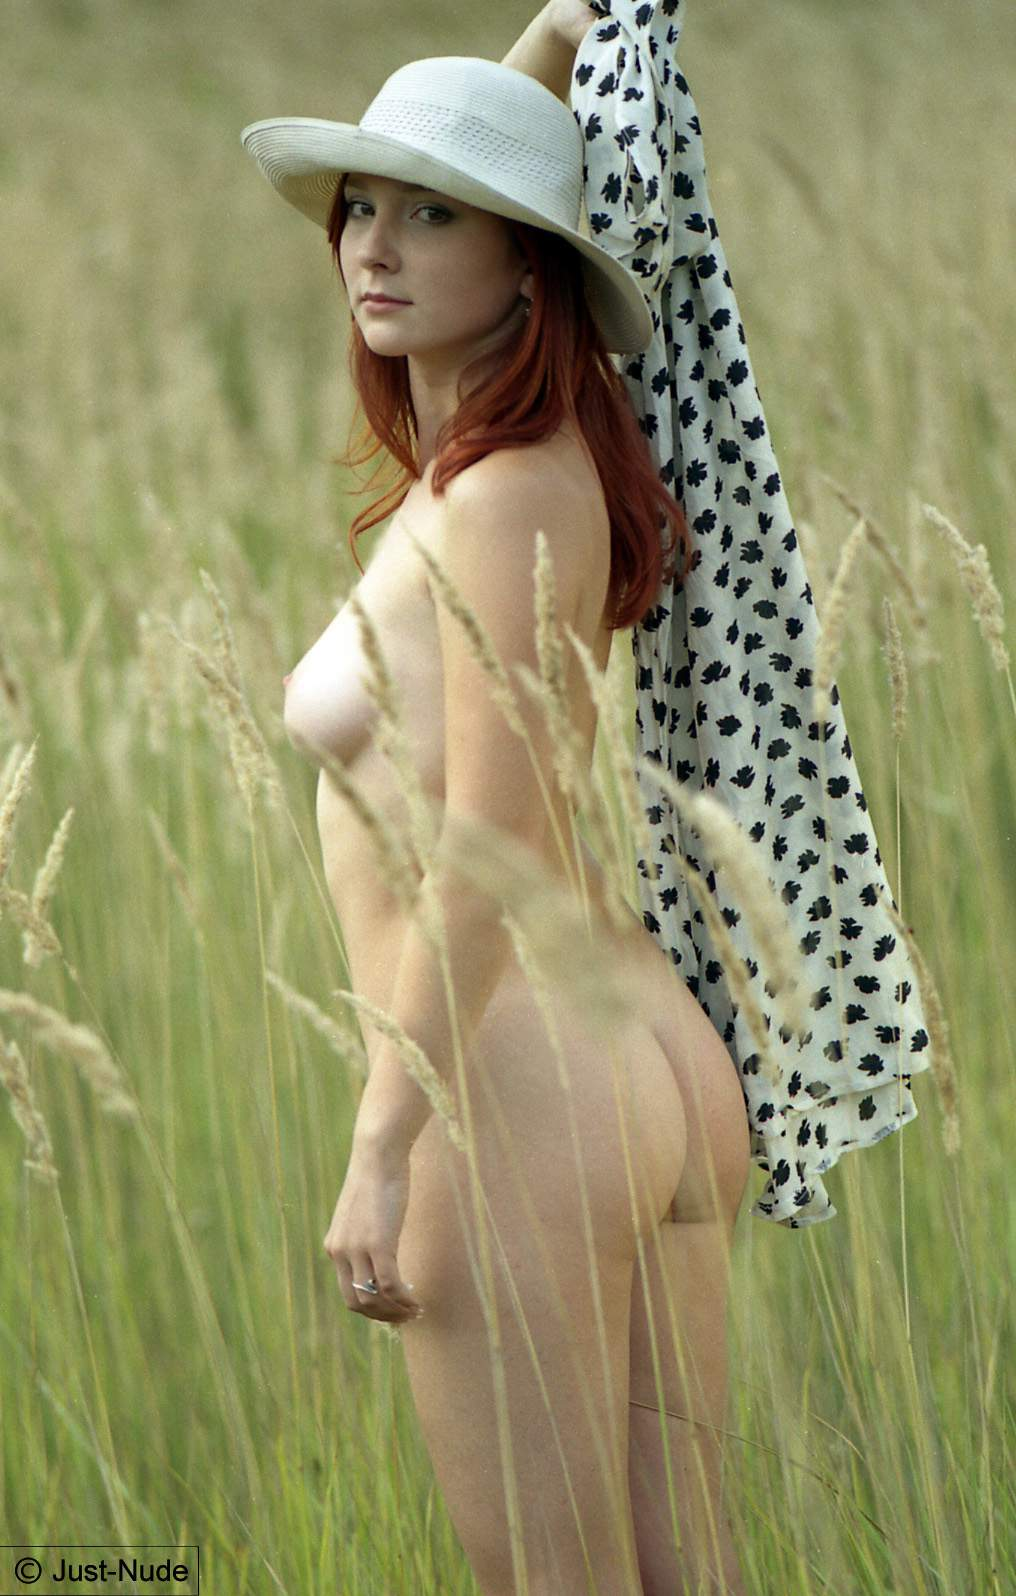 Katya – hot summer field